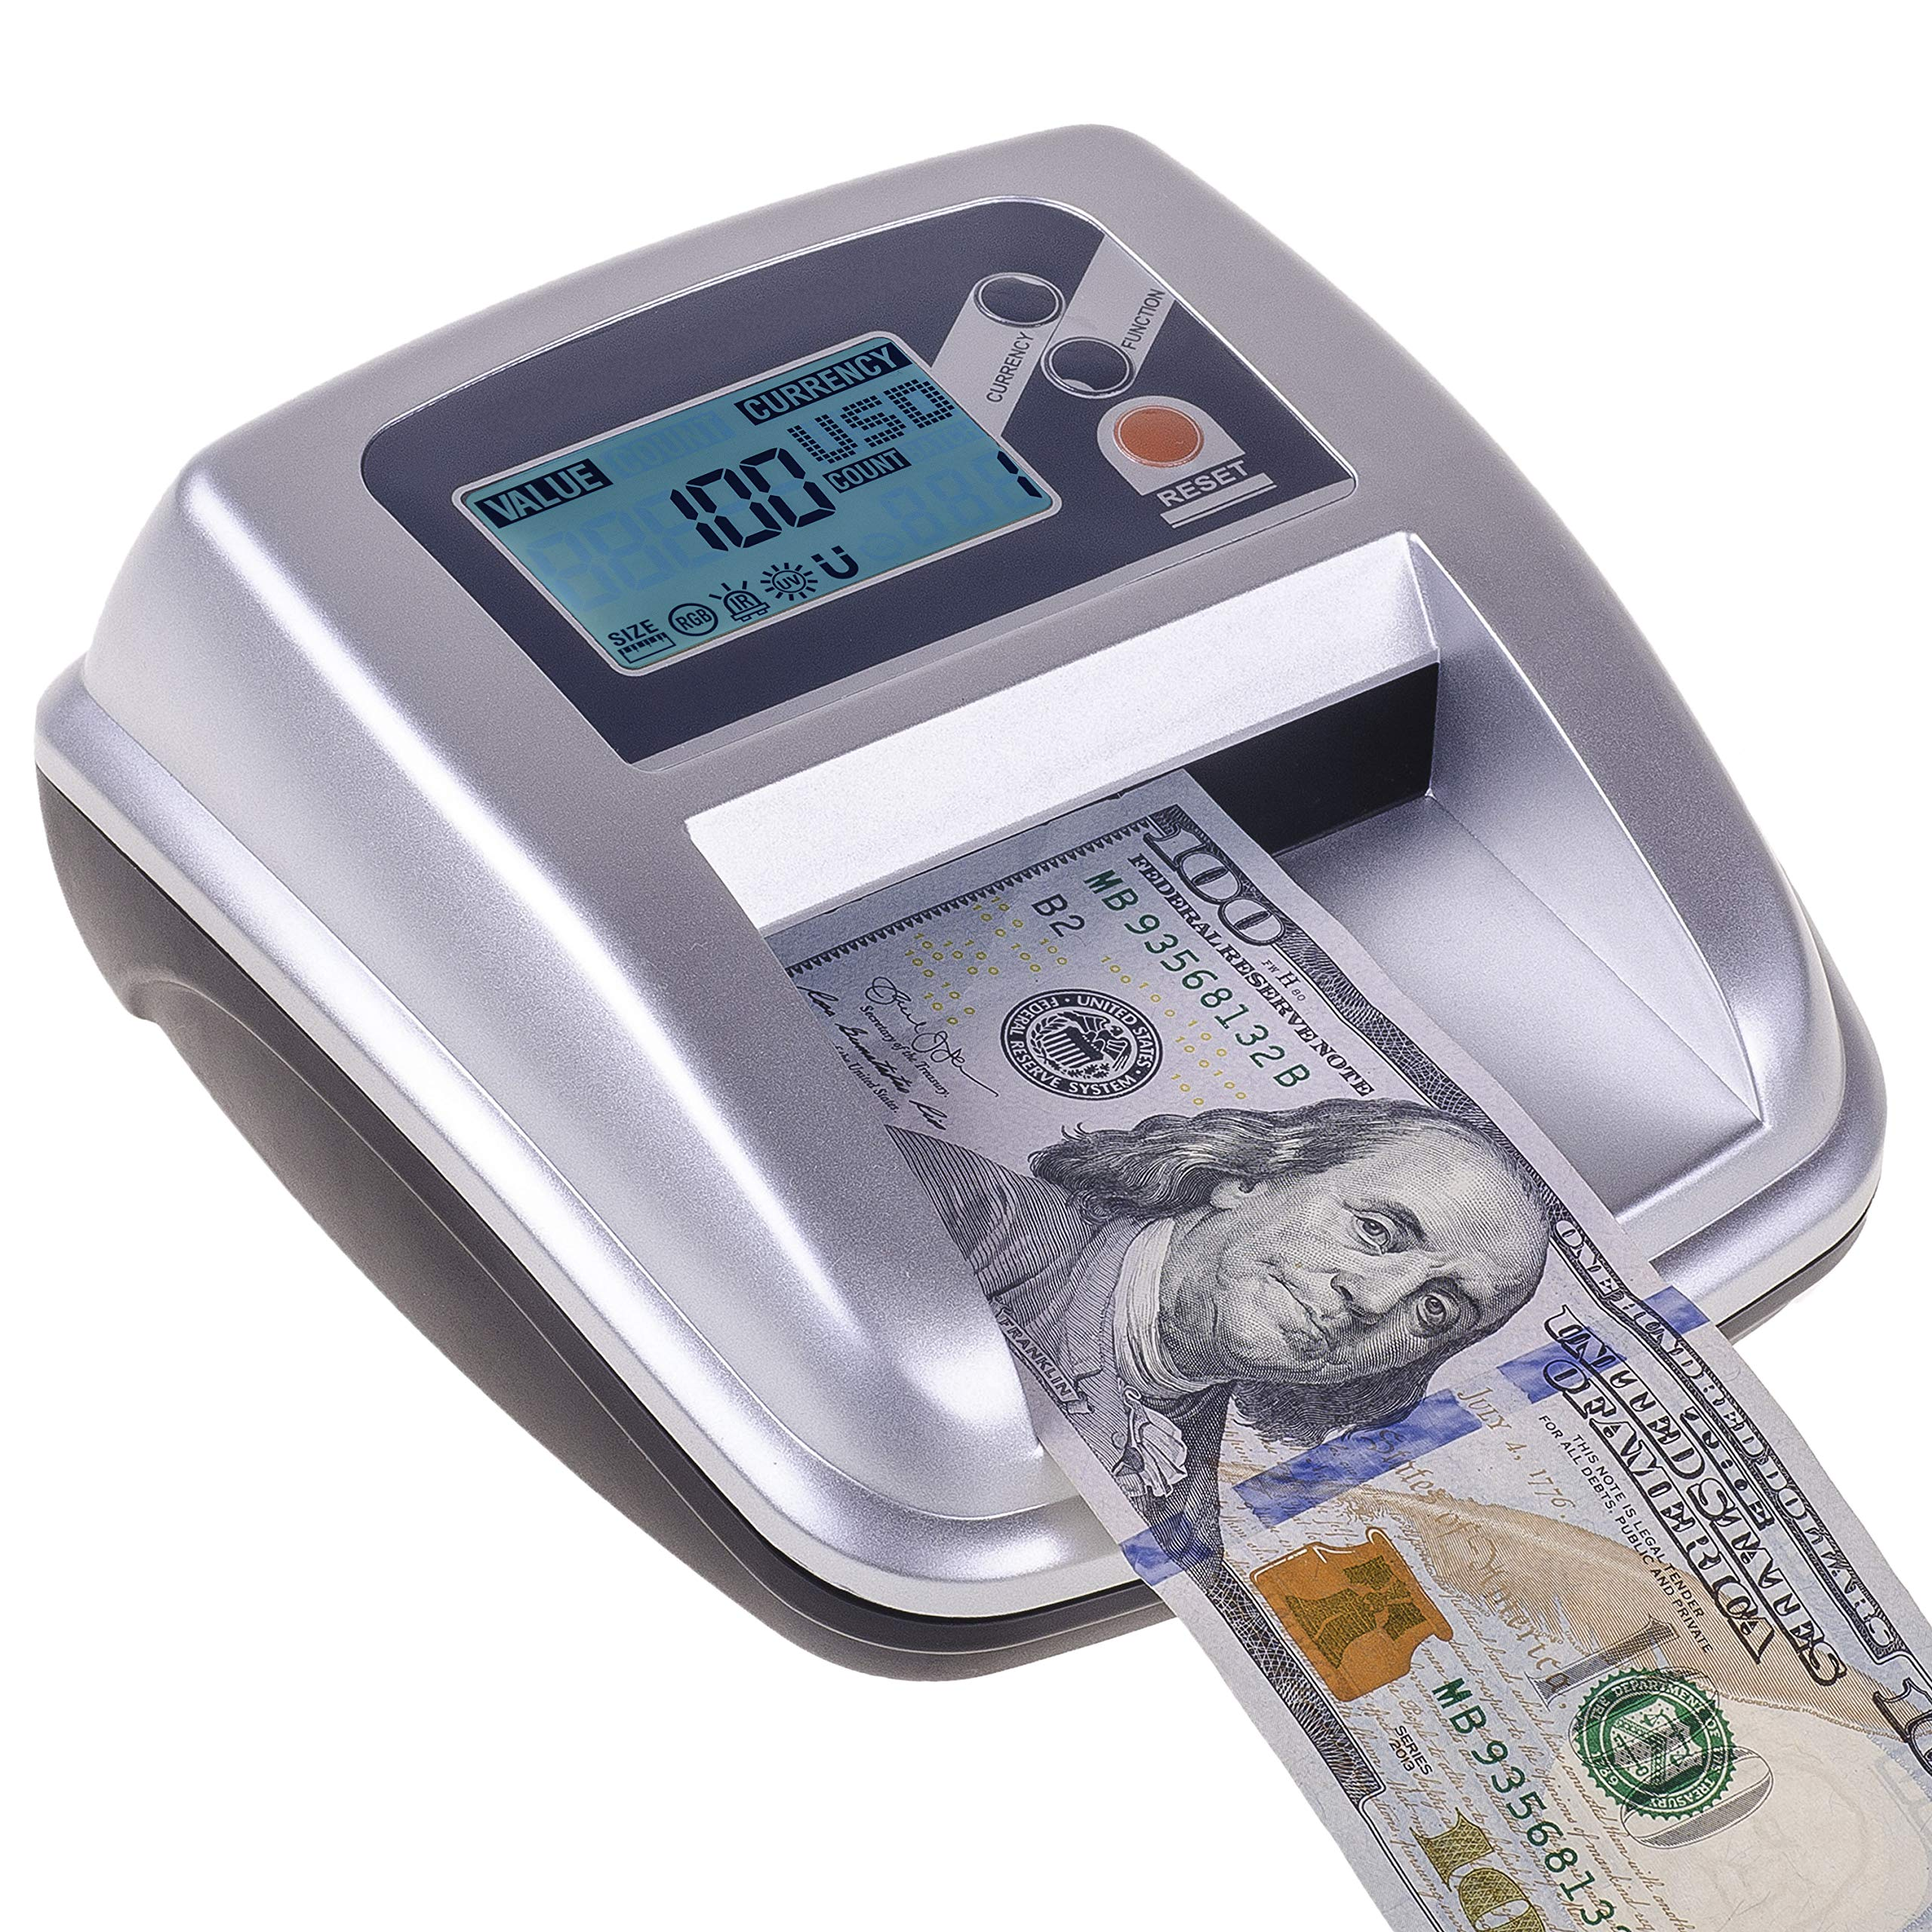 New Counterfeit Bill Detector & Counter with MG/UV/IR/Size/MS Detection. by Eko system